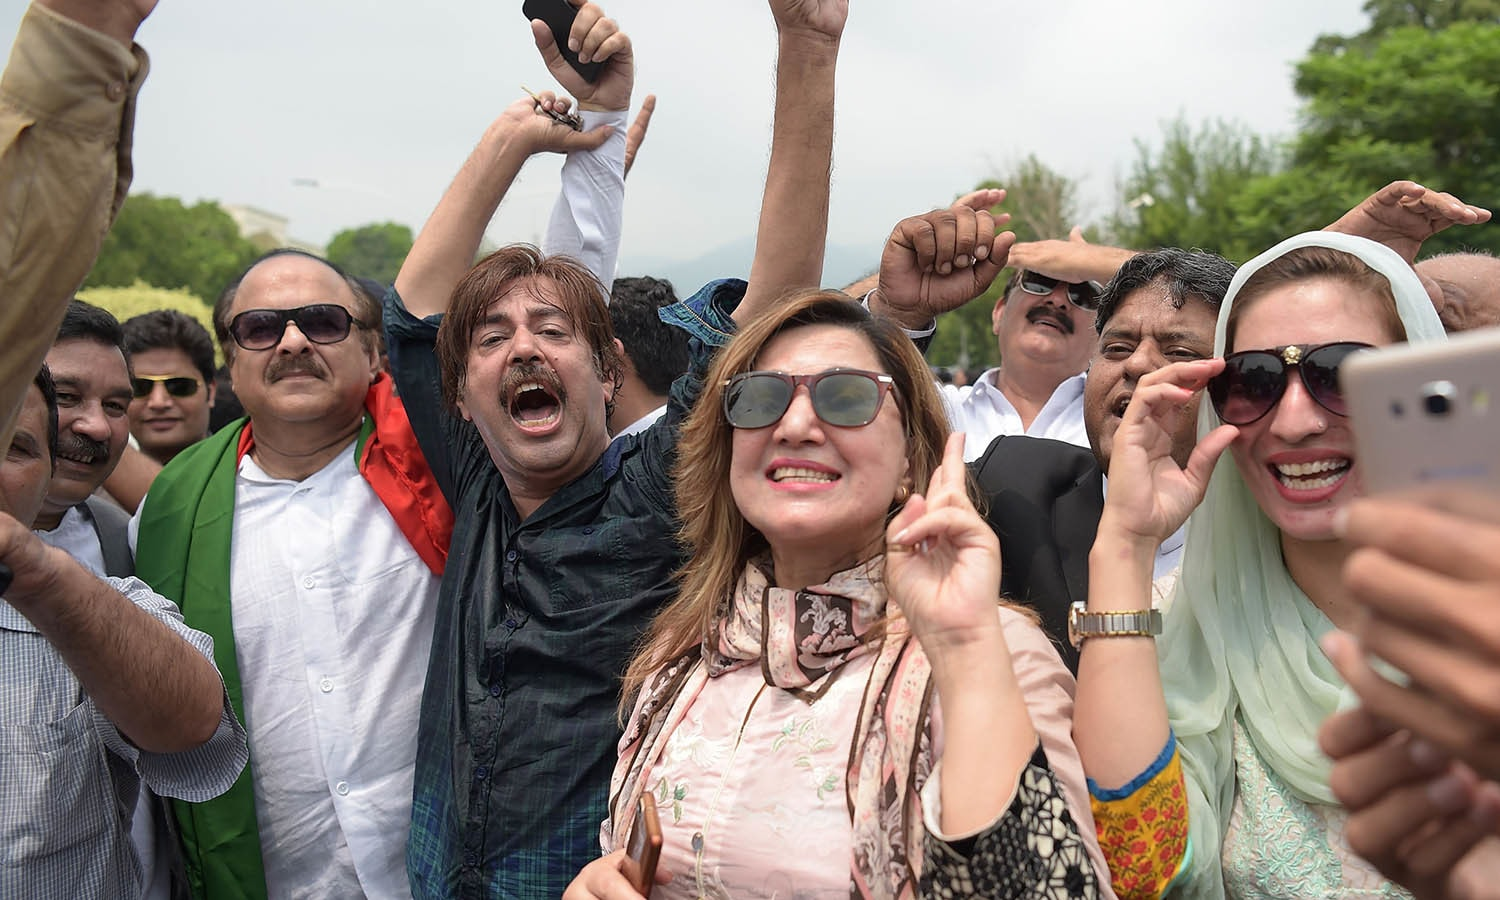 PTI supporters celebrate after a Supreme Court verdict against Nawaz Sharif. — AFP